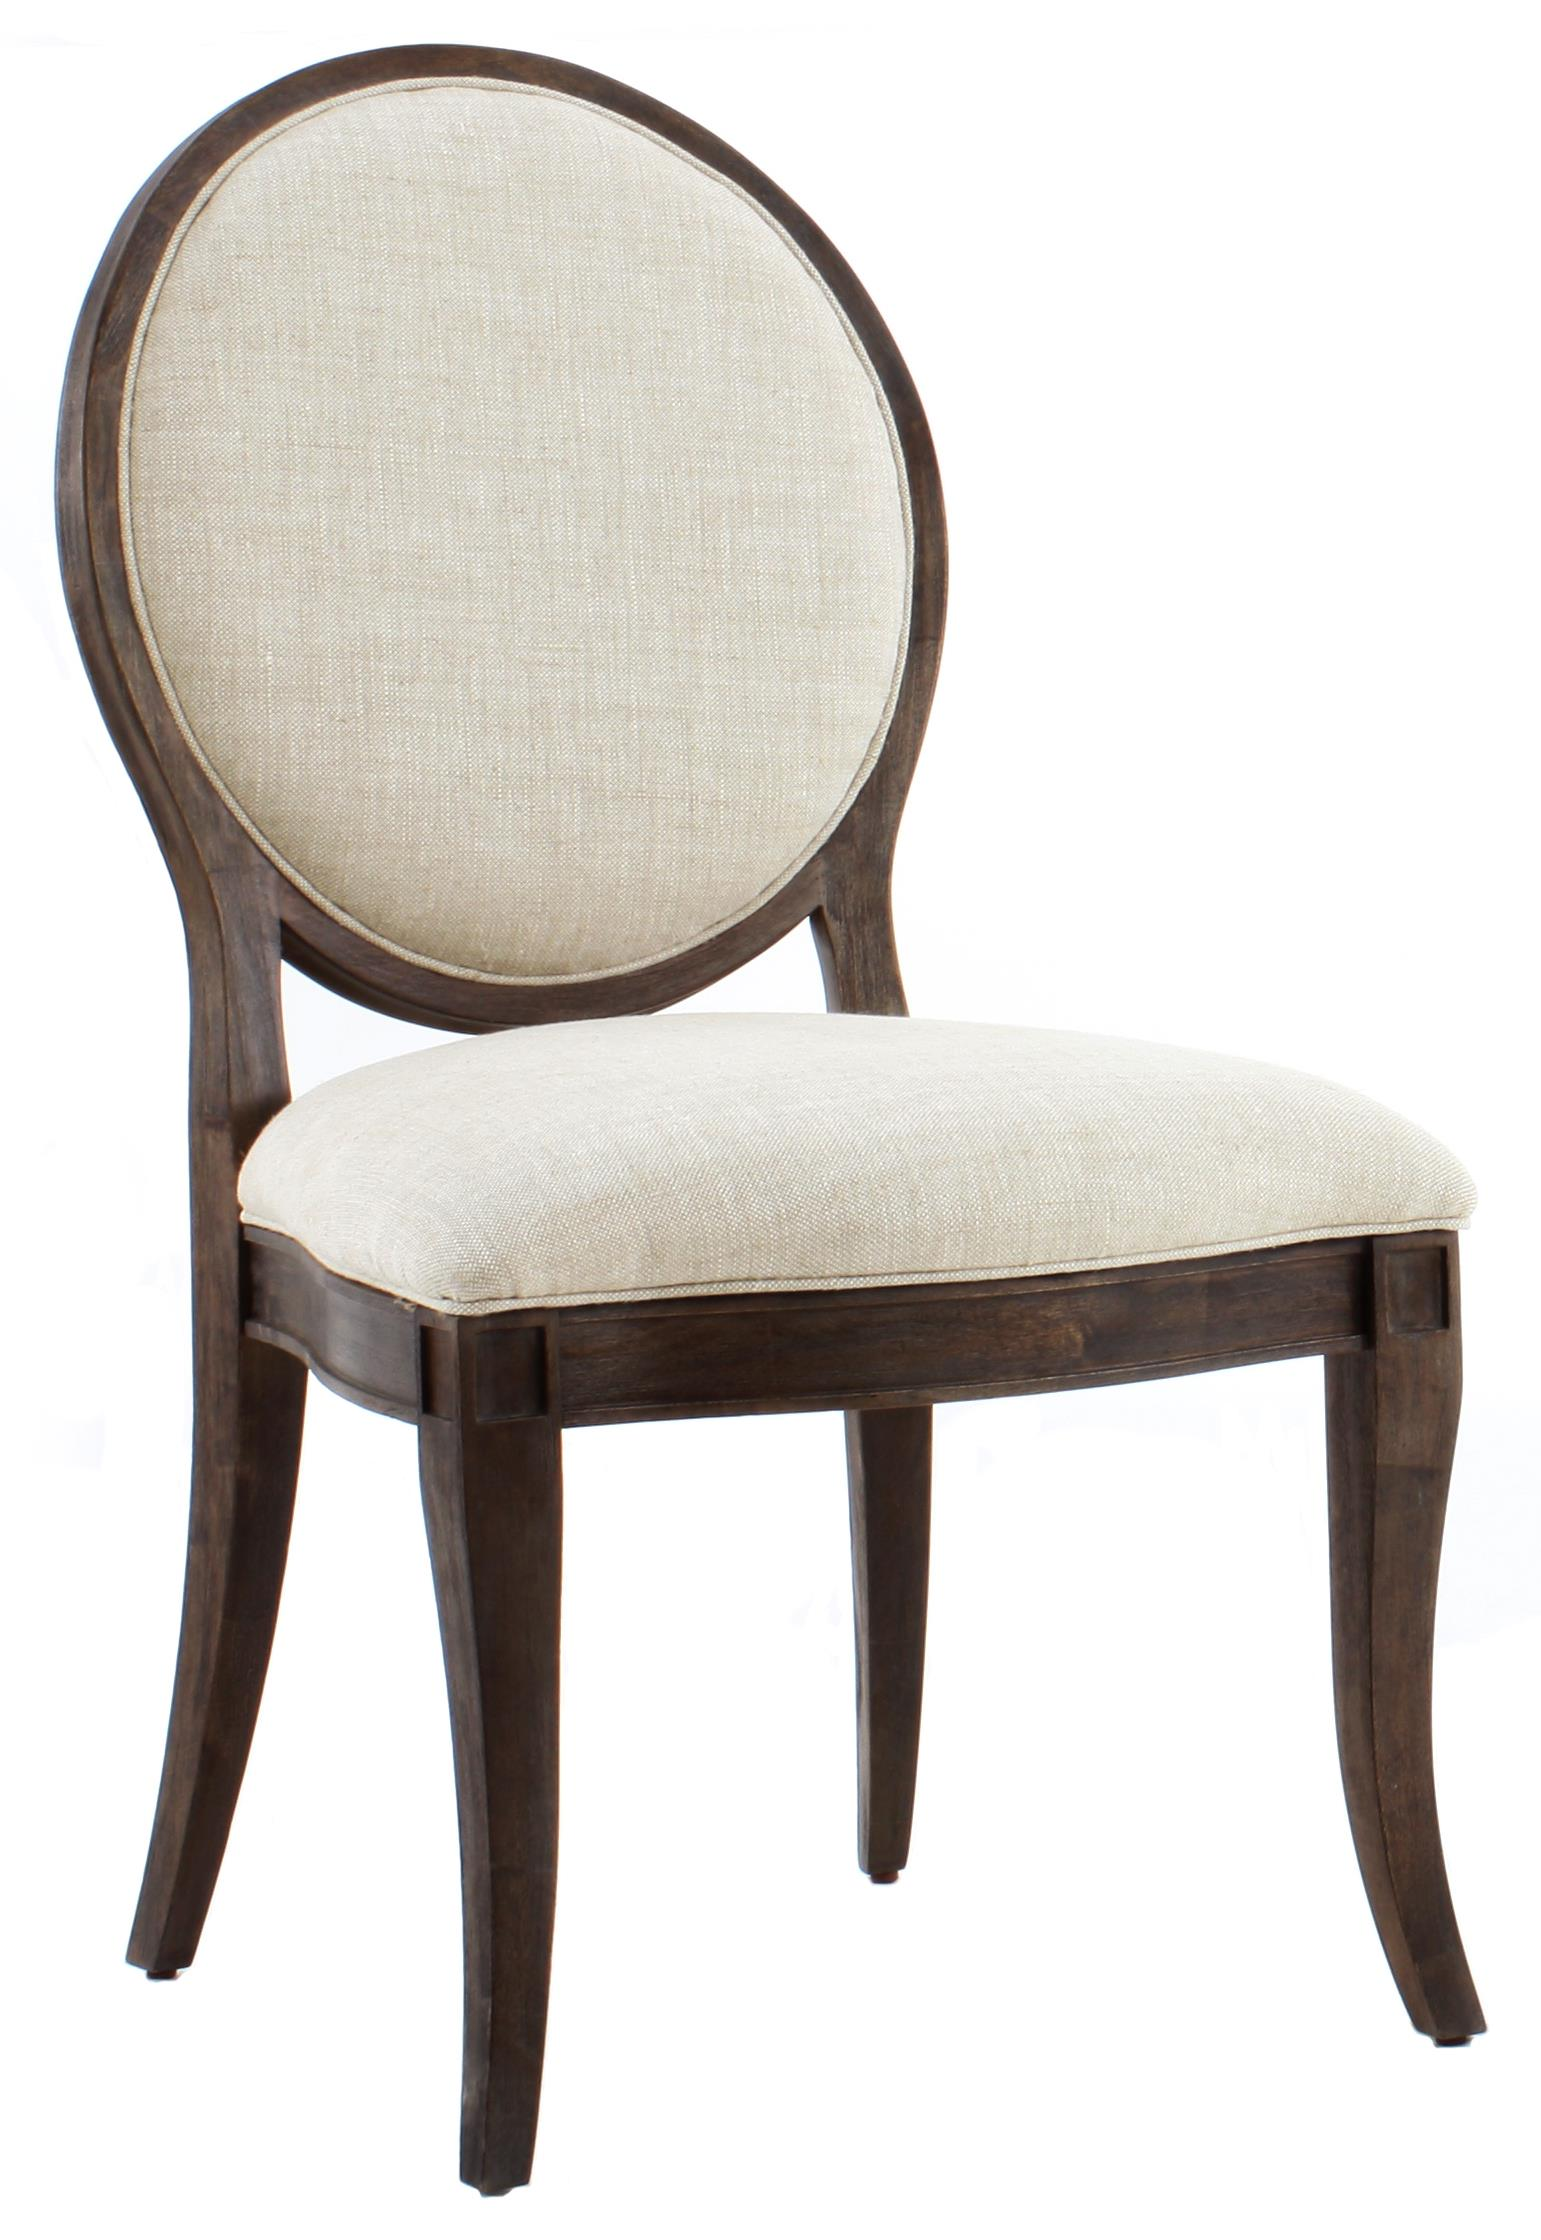 Marvelous A.R.T. Furniture Inc Saint Germain Oval Back Side Chair   Item Number:  215202 1513